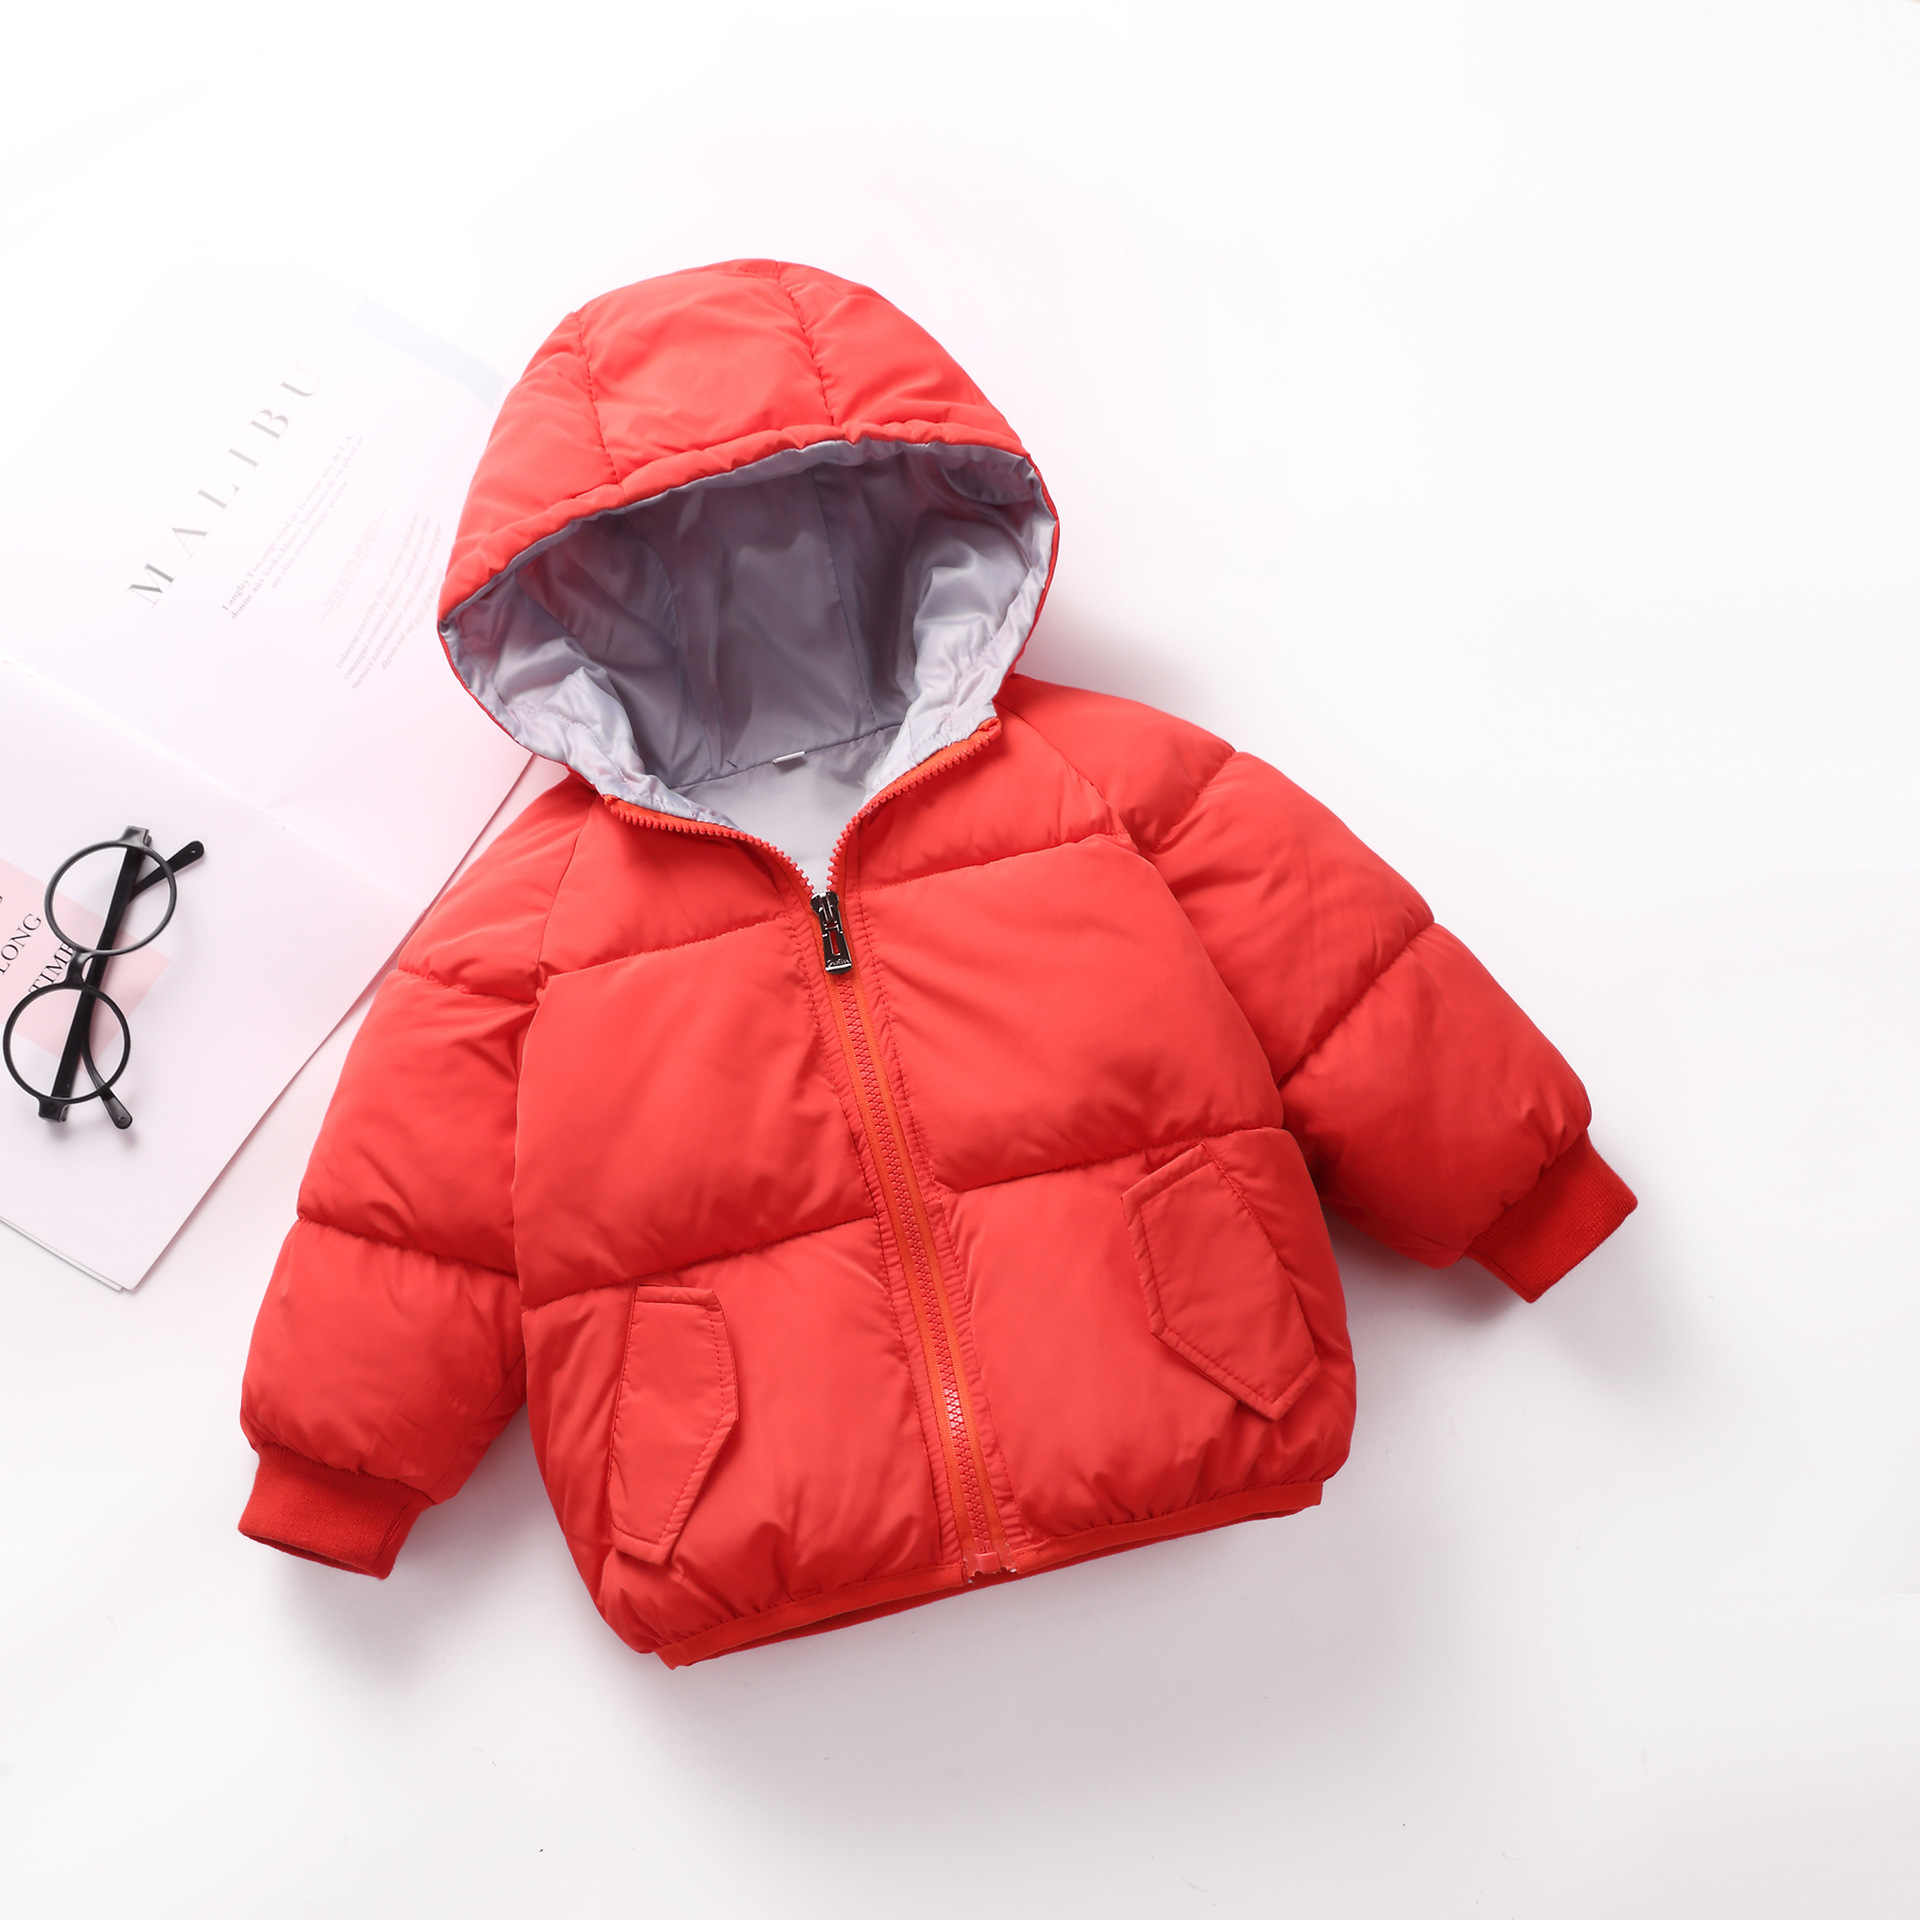 9407ae8fb ... BibiCola winter jacket thick velvet girls boys coat warm children's  jackets cotton infant clothing padded jacket ...